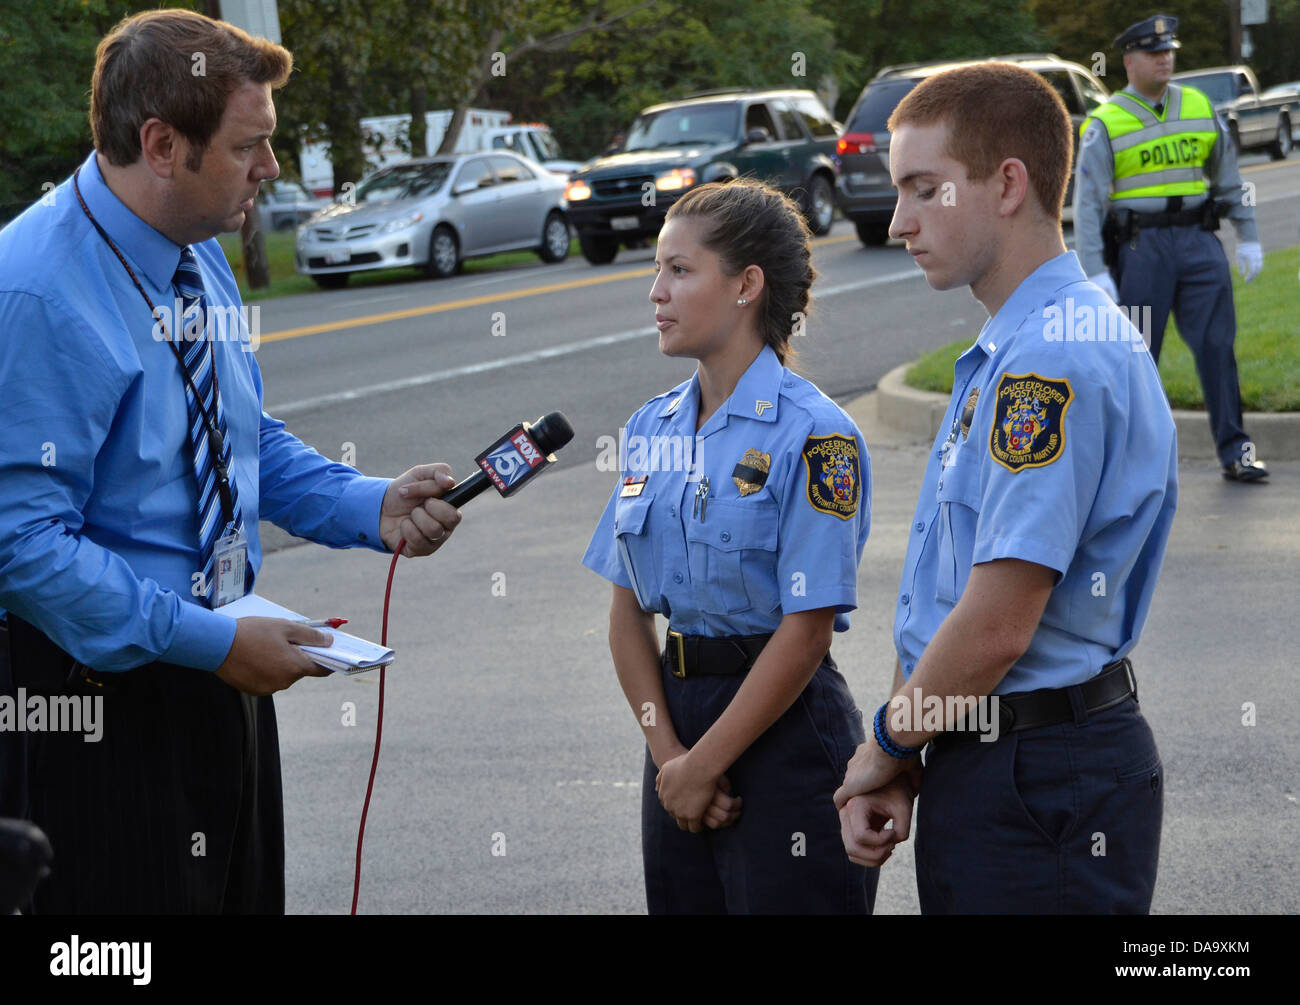 A TV reorter interviews two police cadets at the funeral for a policeman killed in the line of duty Beltsville, - Stock Image